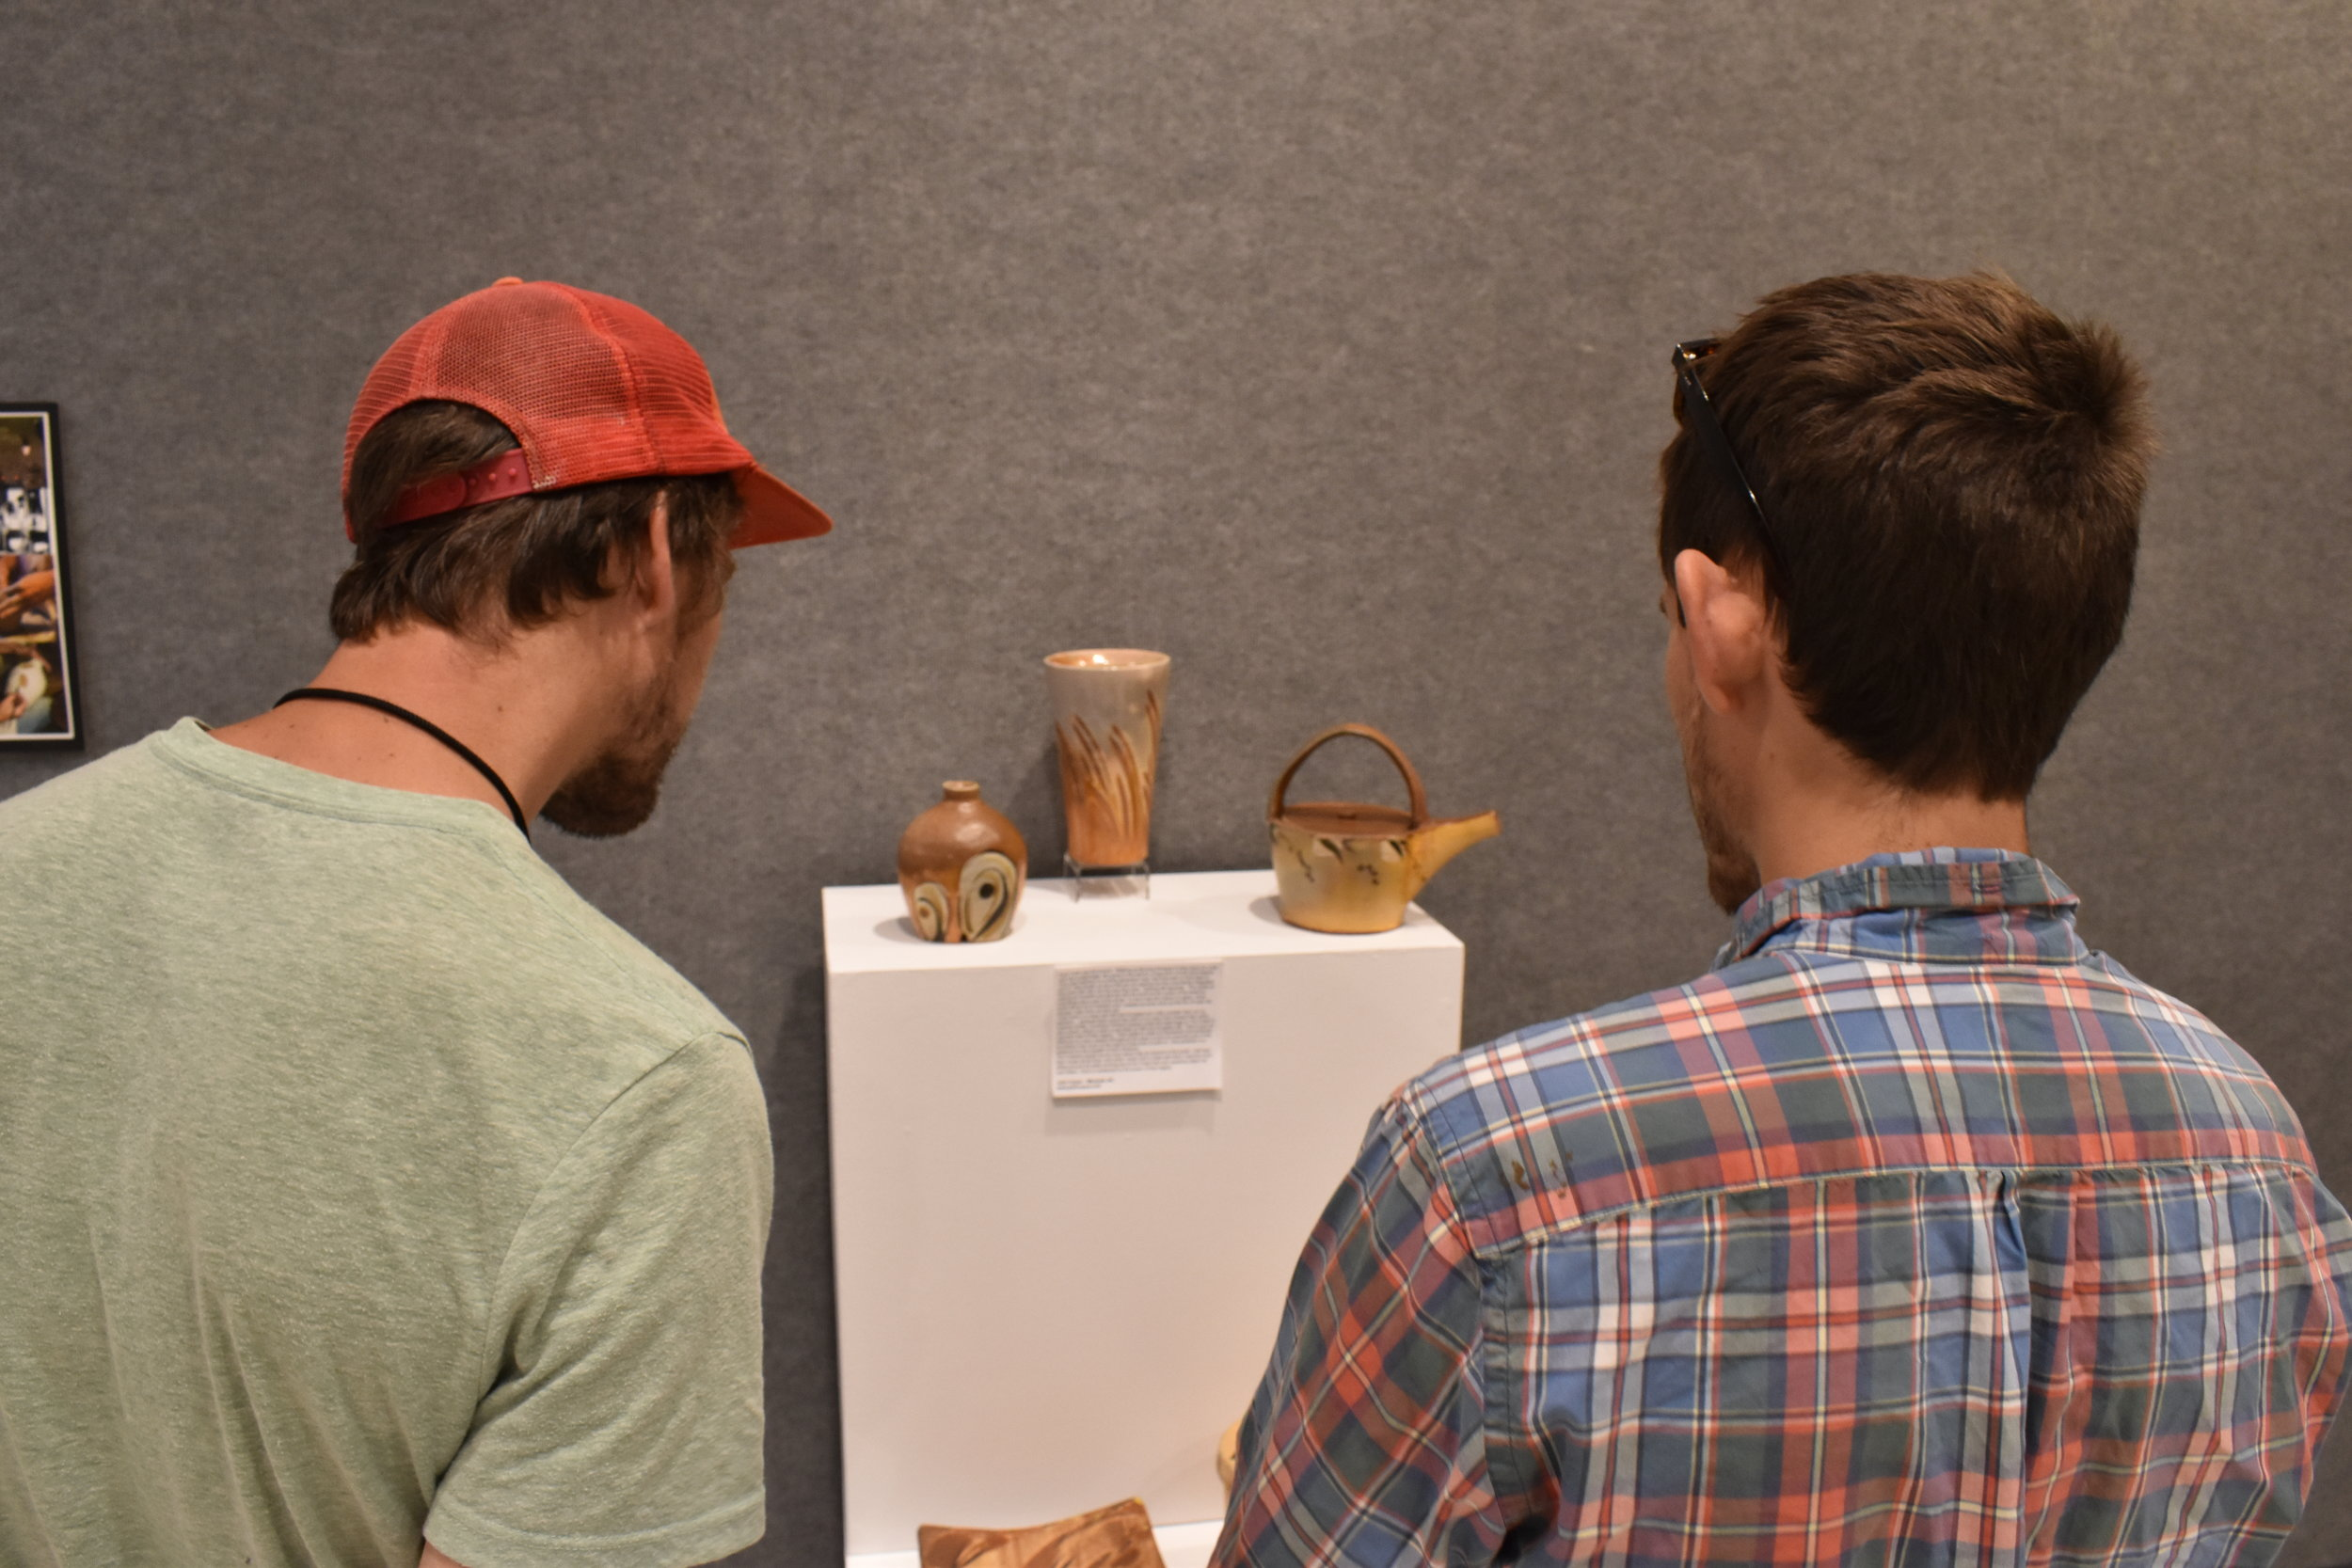 Tom Alward & Hamish Jackson observing a group of pots. The vase in the center of the pedestal was made by Josh Copus, and the pots around it are Rock Creek pots from his personal collection.